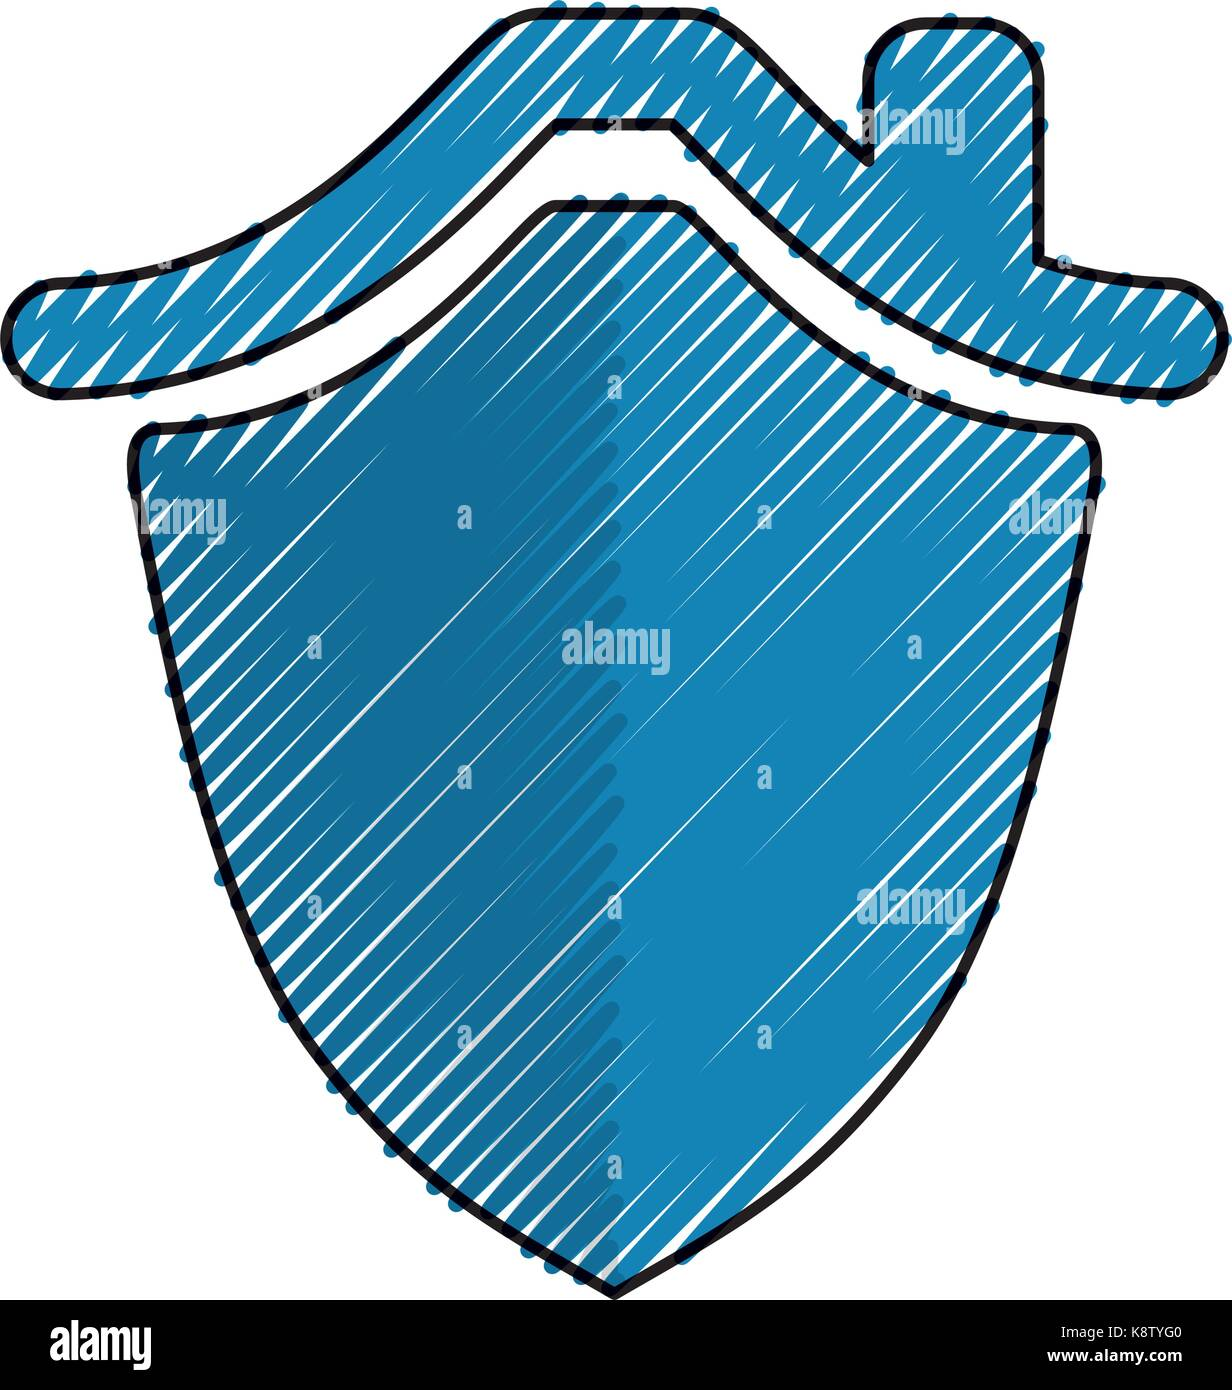 House insurance symbol - Stock Vector